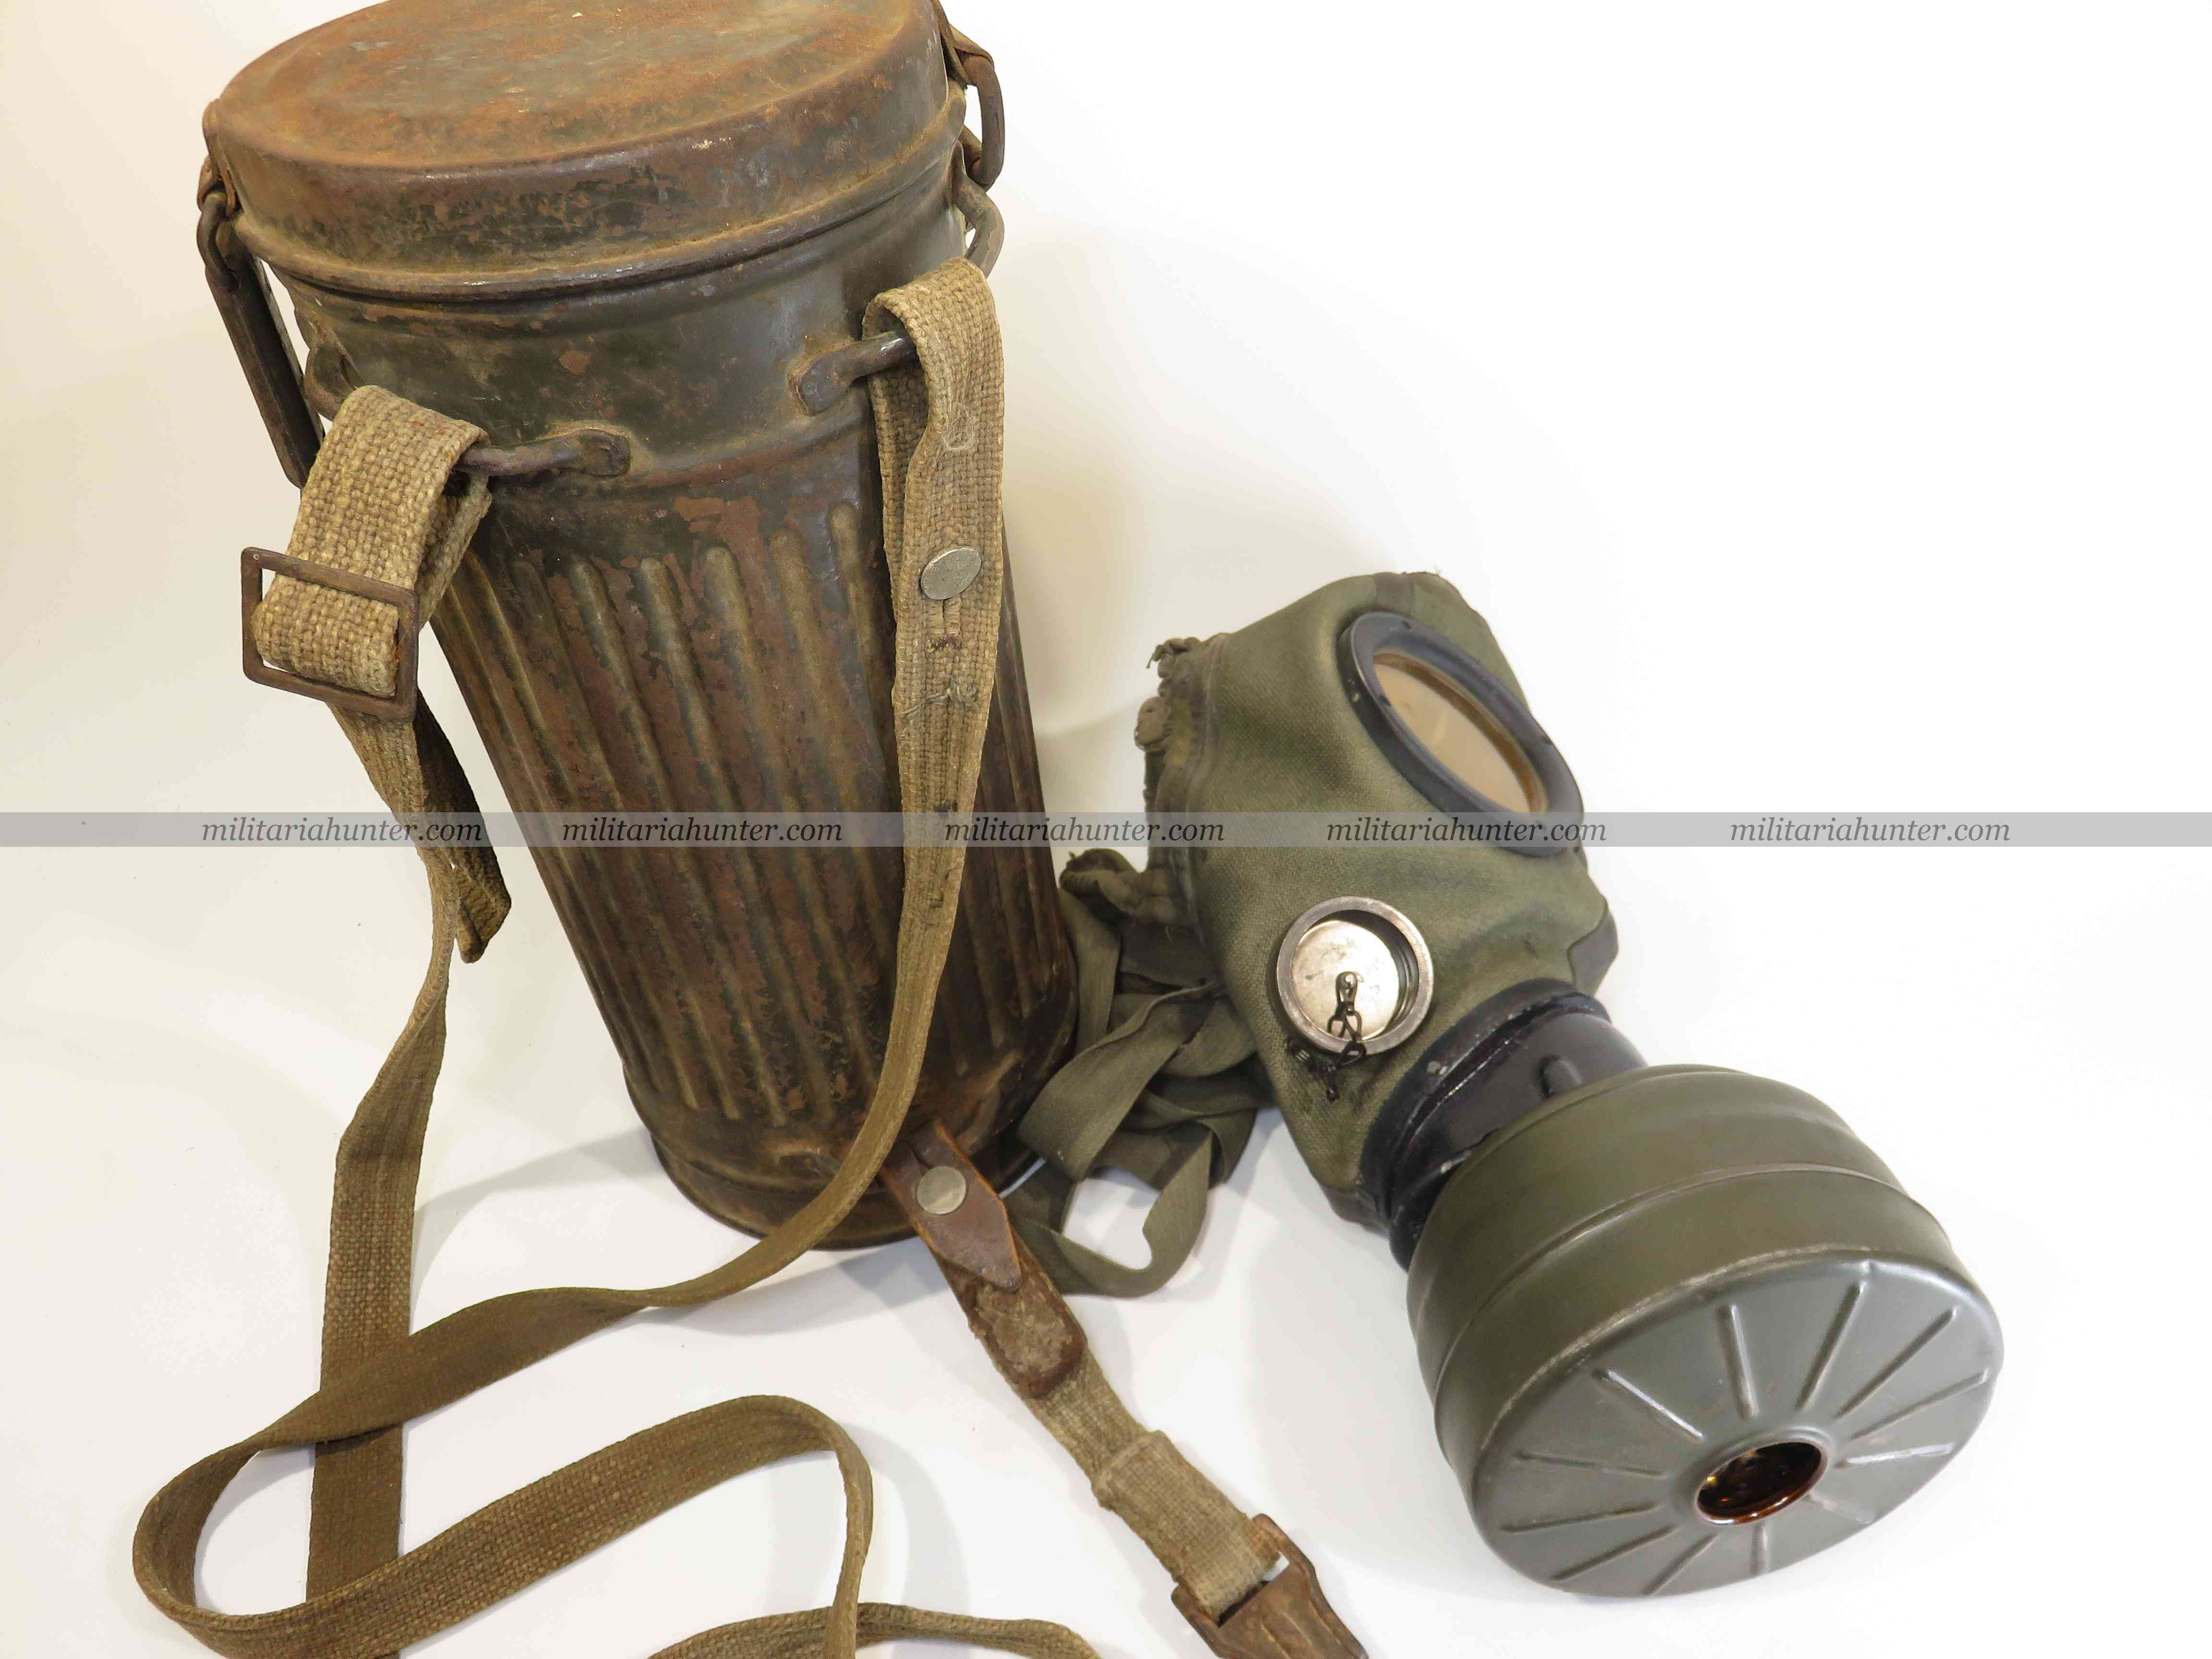 militaria : ww2 german communication gas mask - Masque à gaz prise microphone